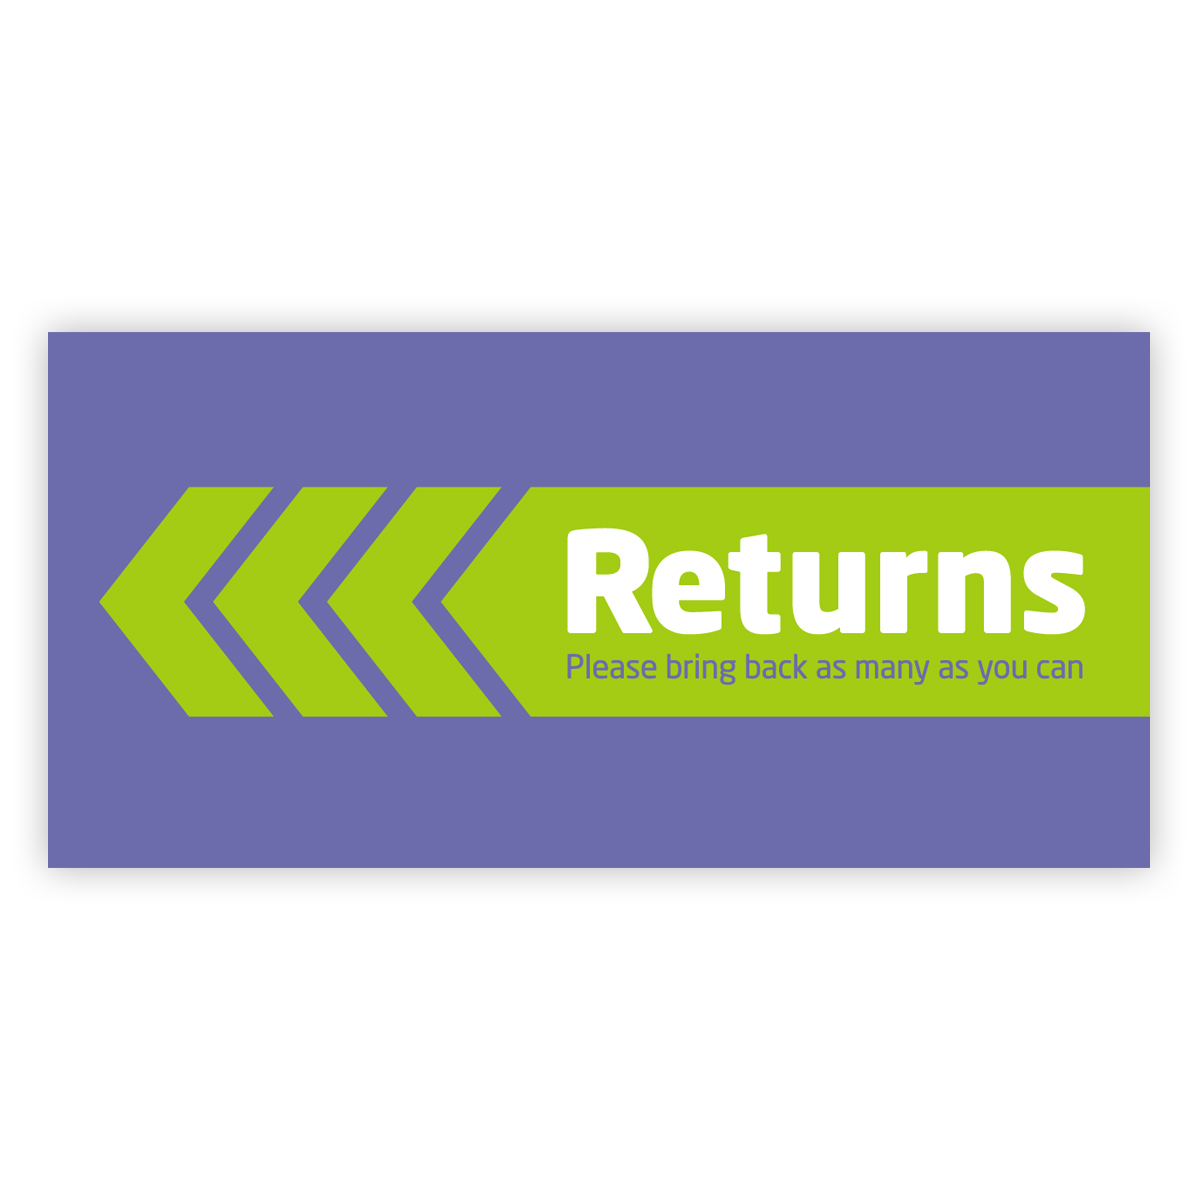 Leaflet - Returns: please bring back as many as you can